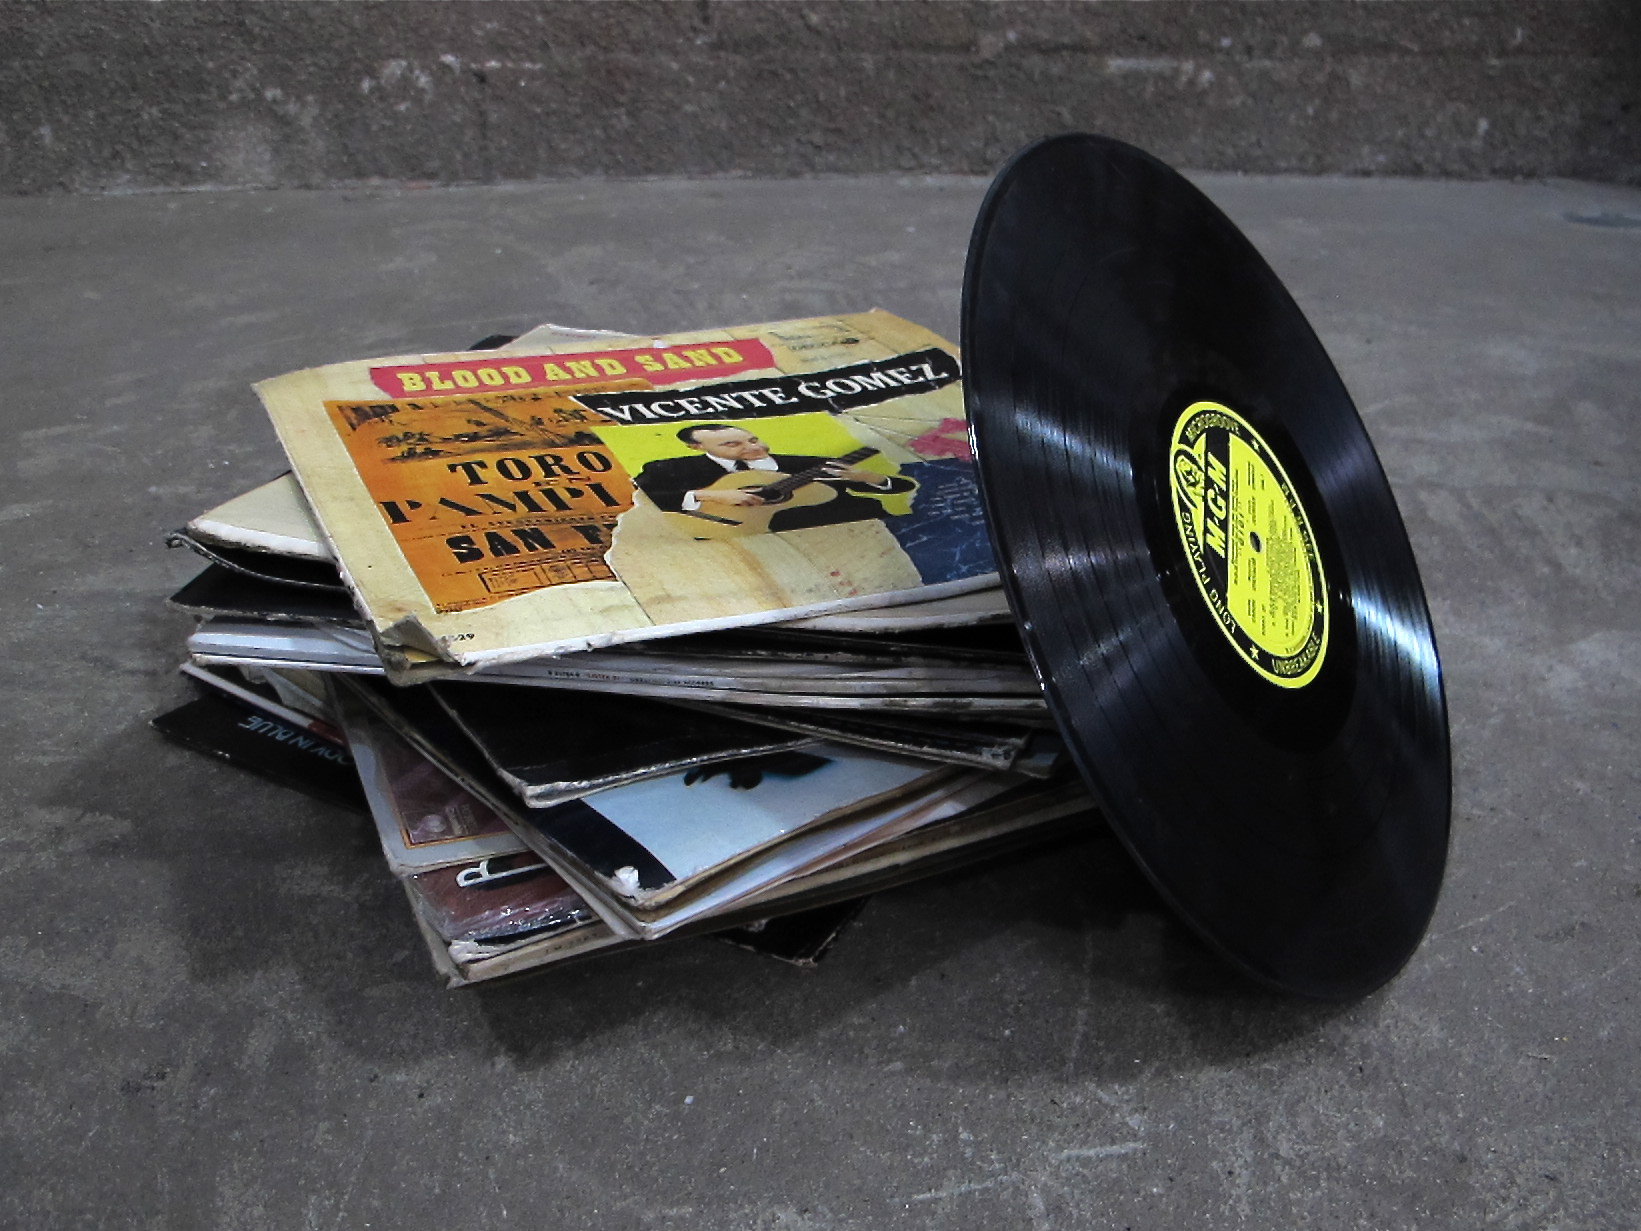 Pile of Records $15